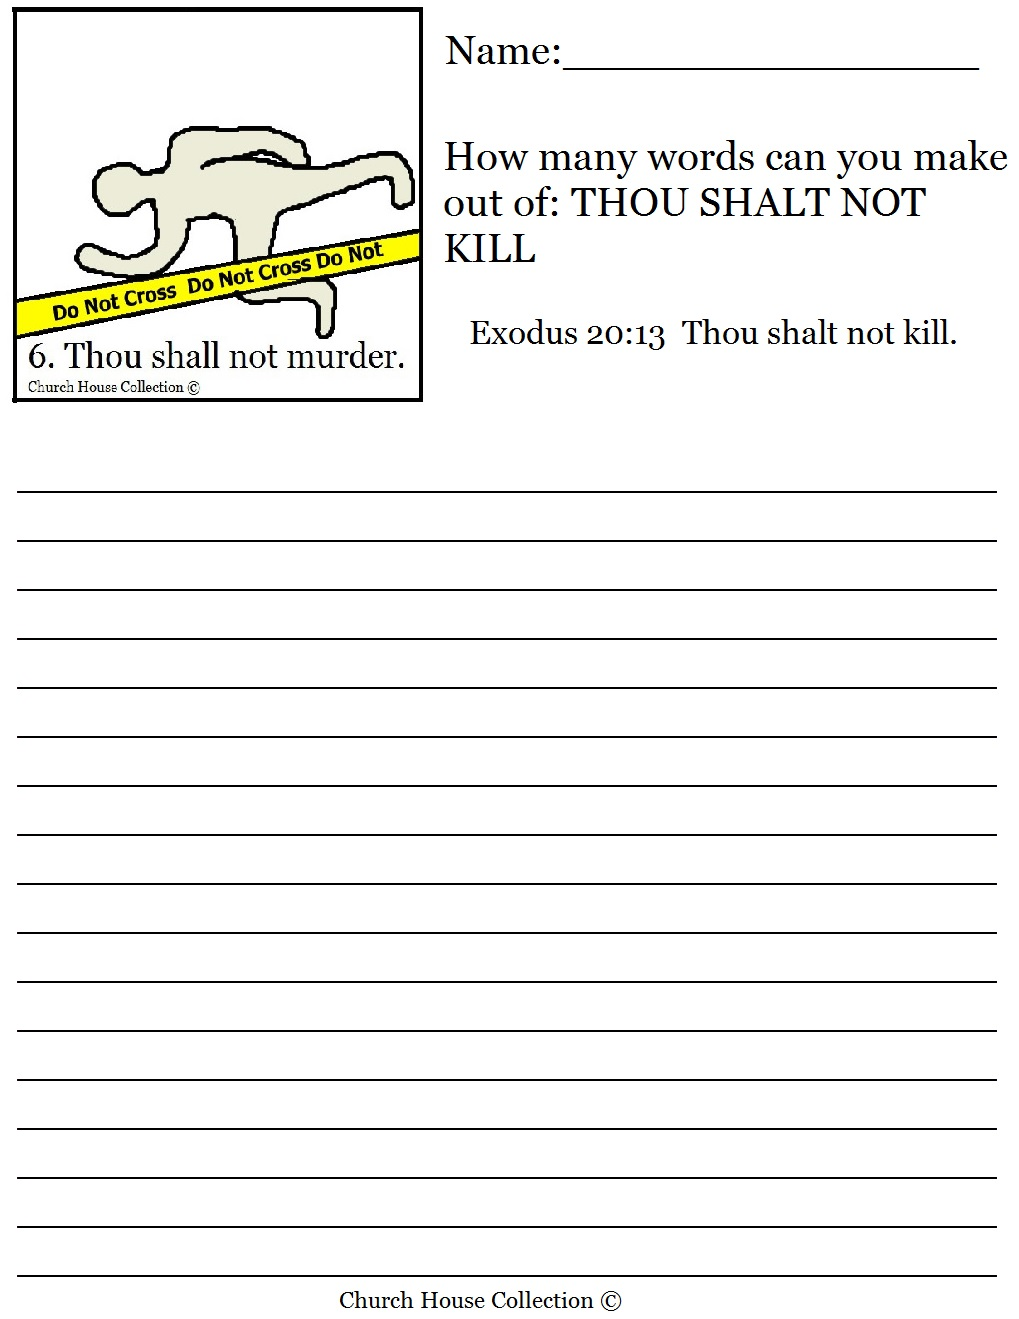 School Worksheets That You Can Print : Popcorn king printable coloring pages best free